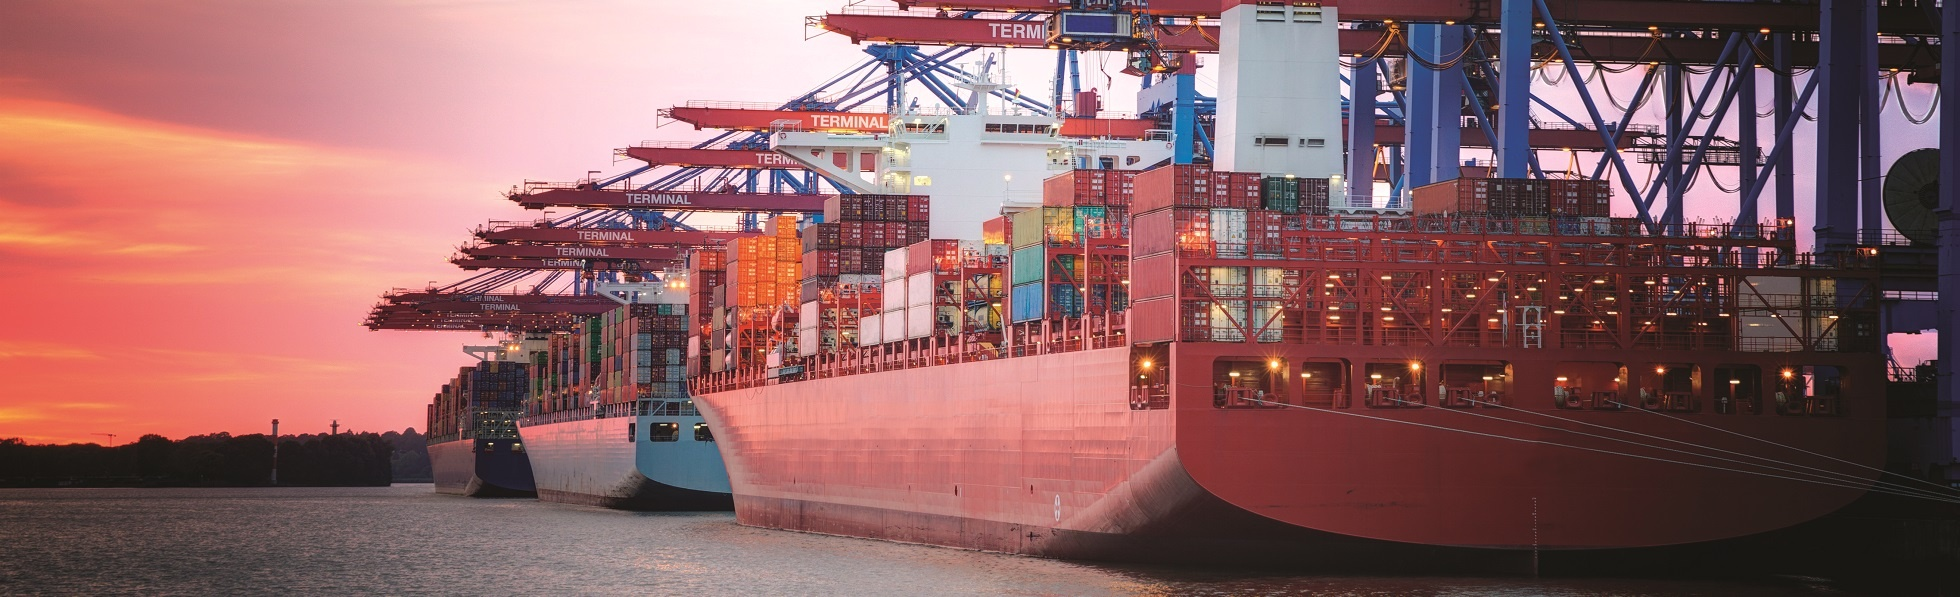 Container Ships Banner.jpg